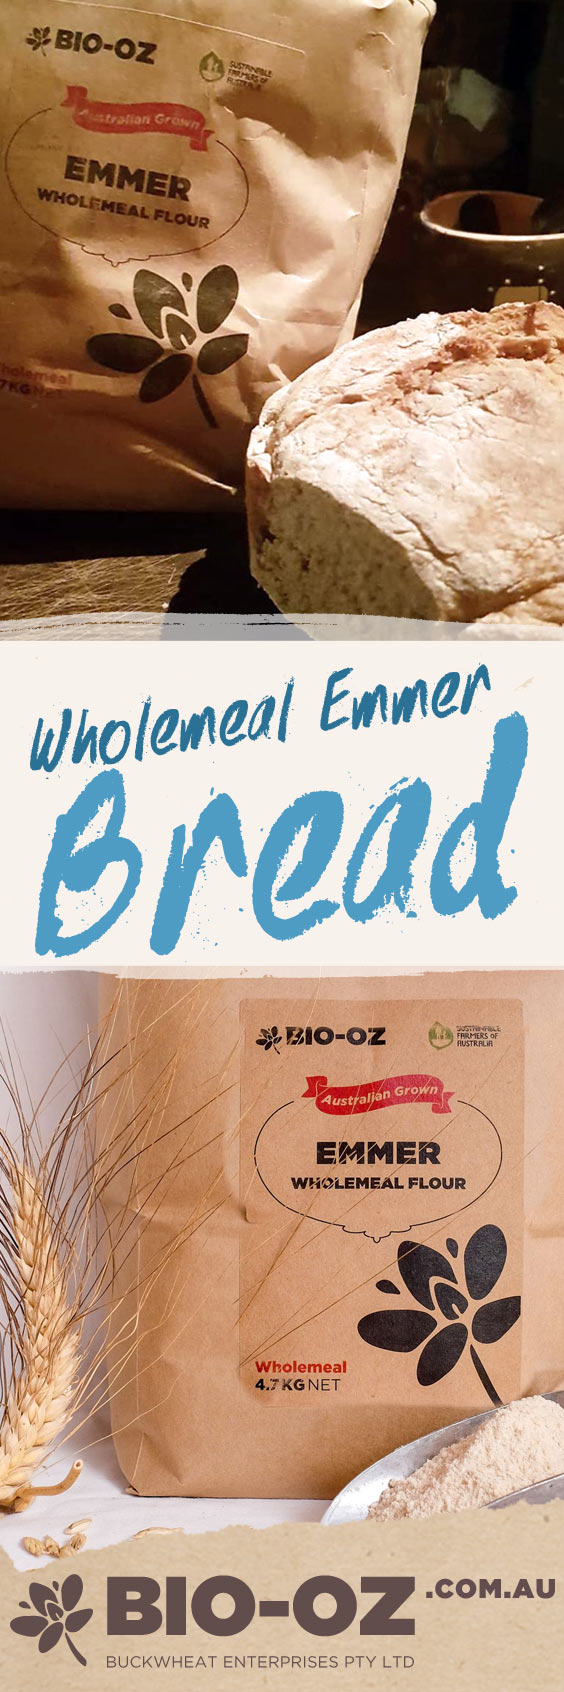 BIO-OZ WHOLEMEAL FLOUR RECIPE